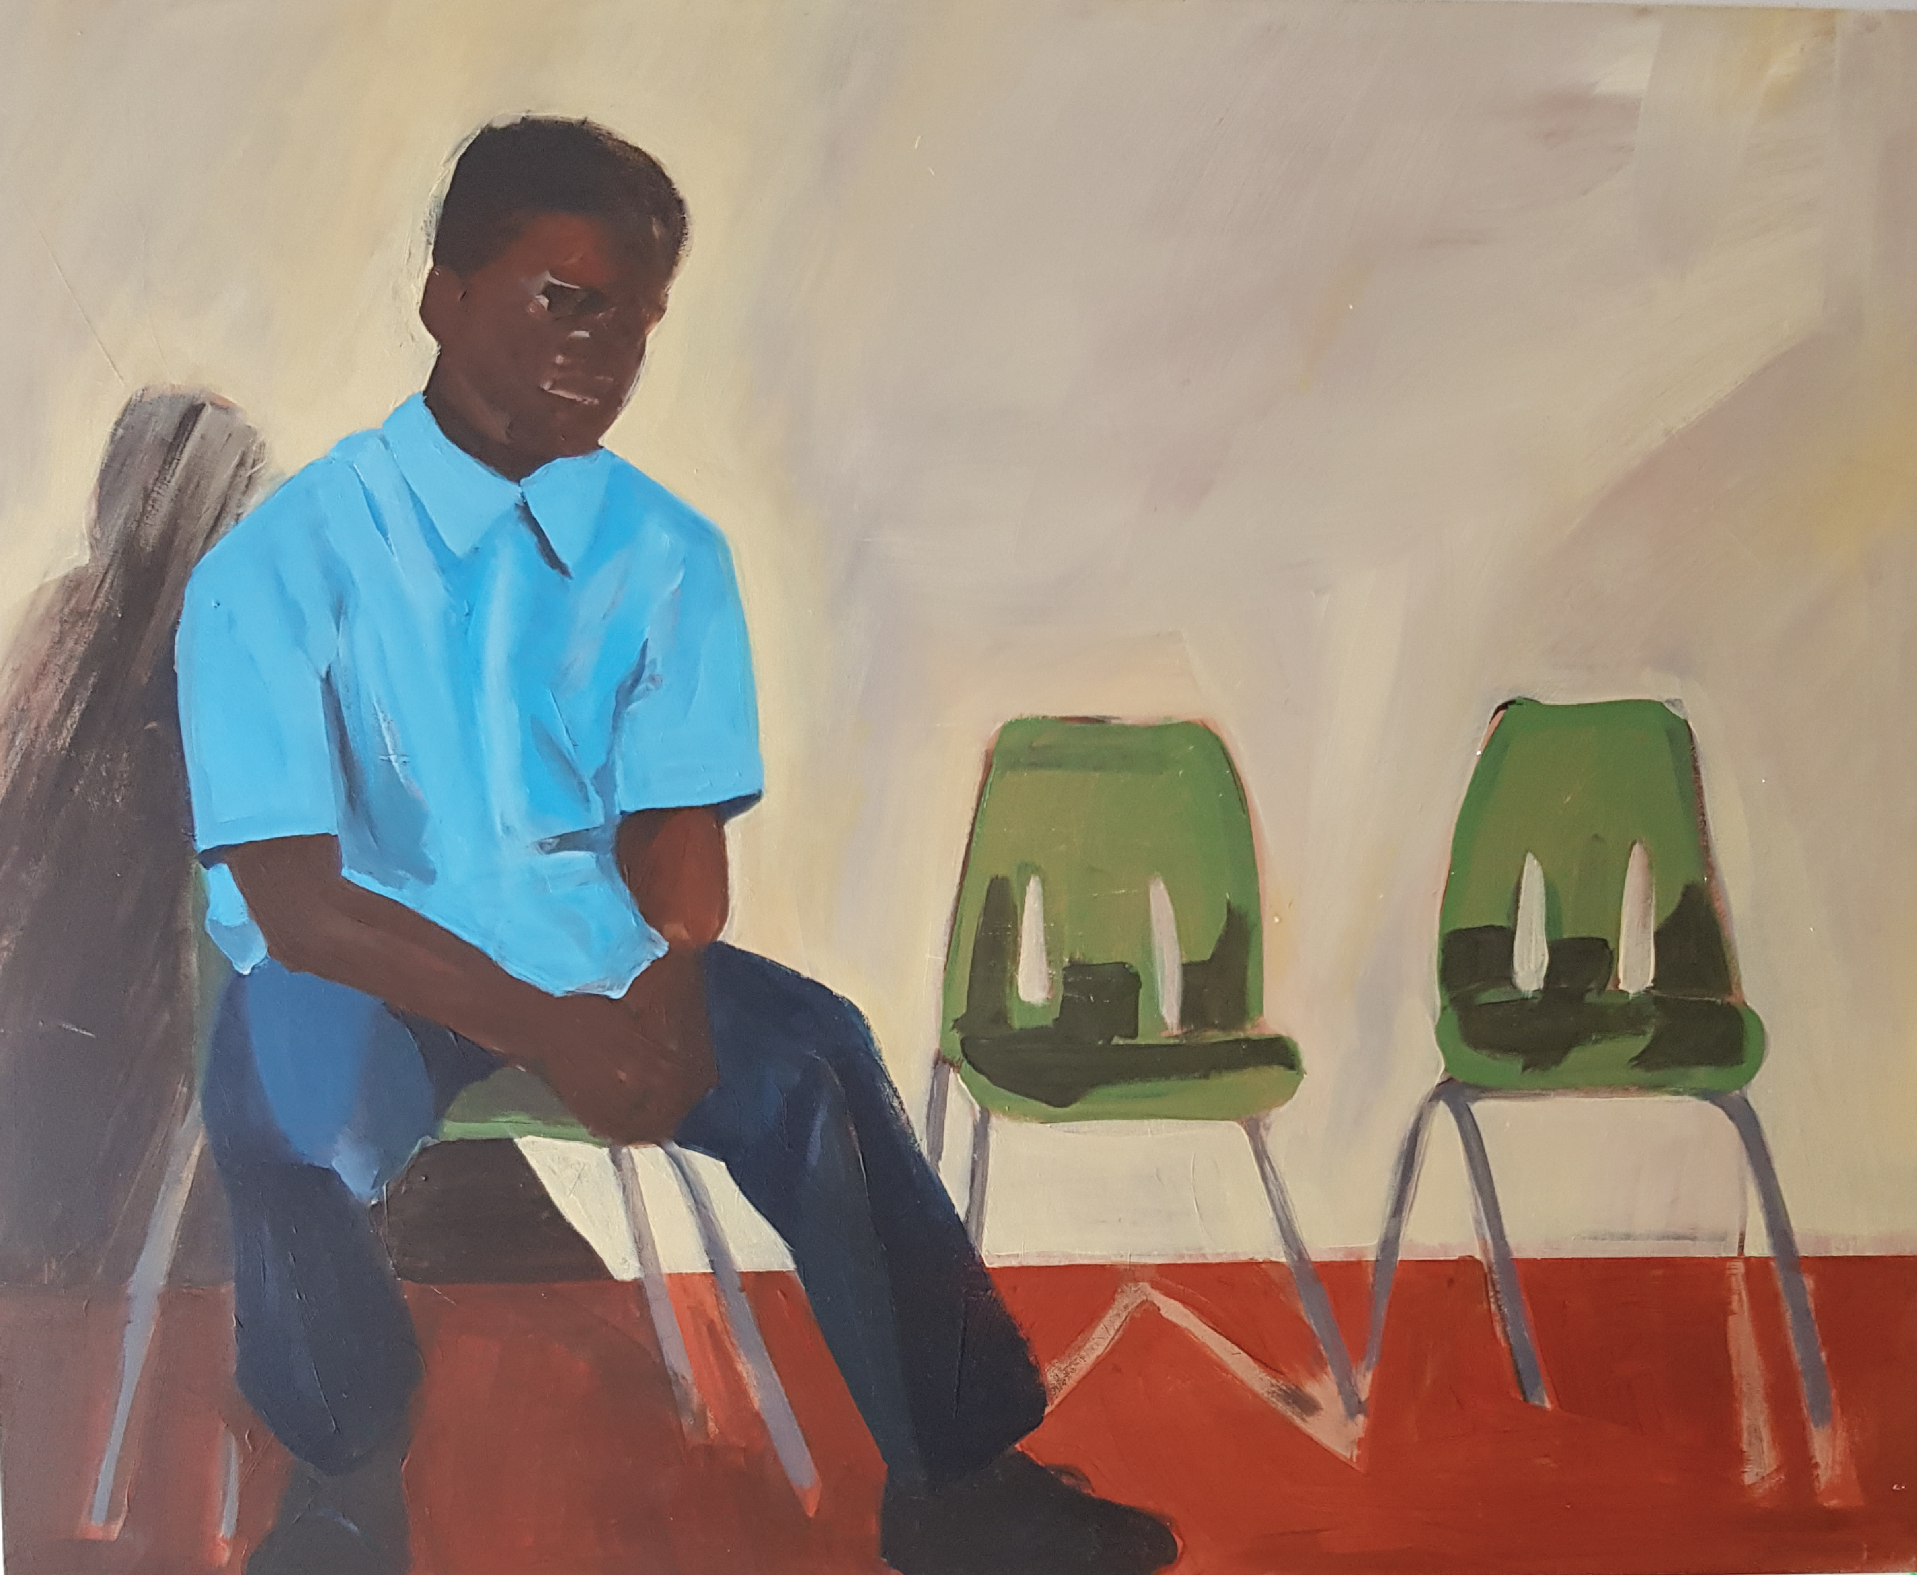 'Boy and two chairs' Emma Bossley $690 (500x400mm)